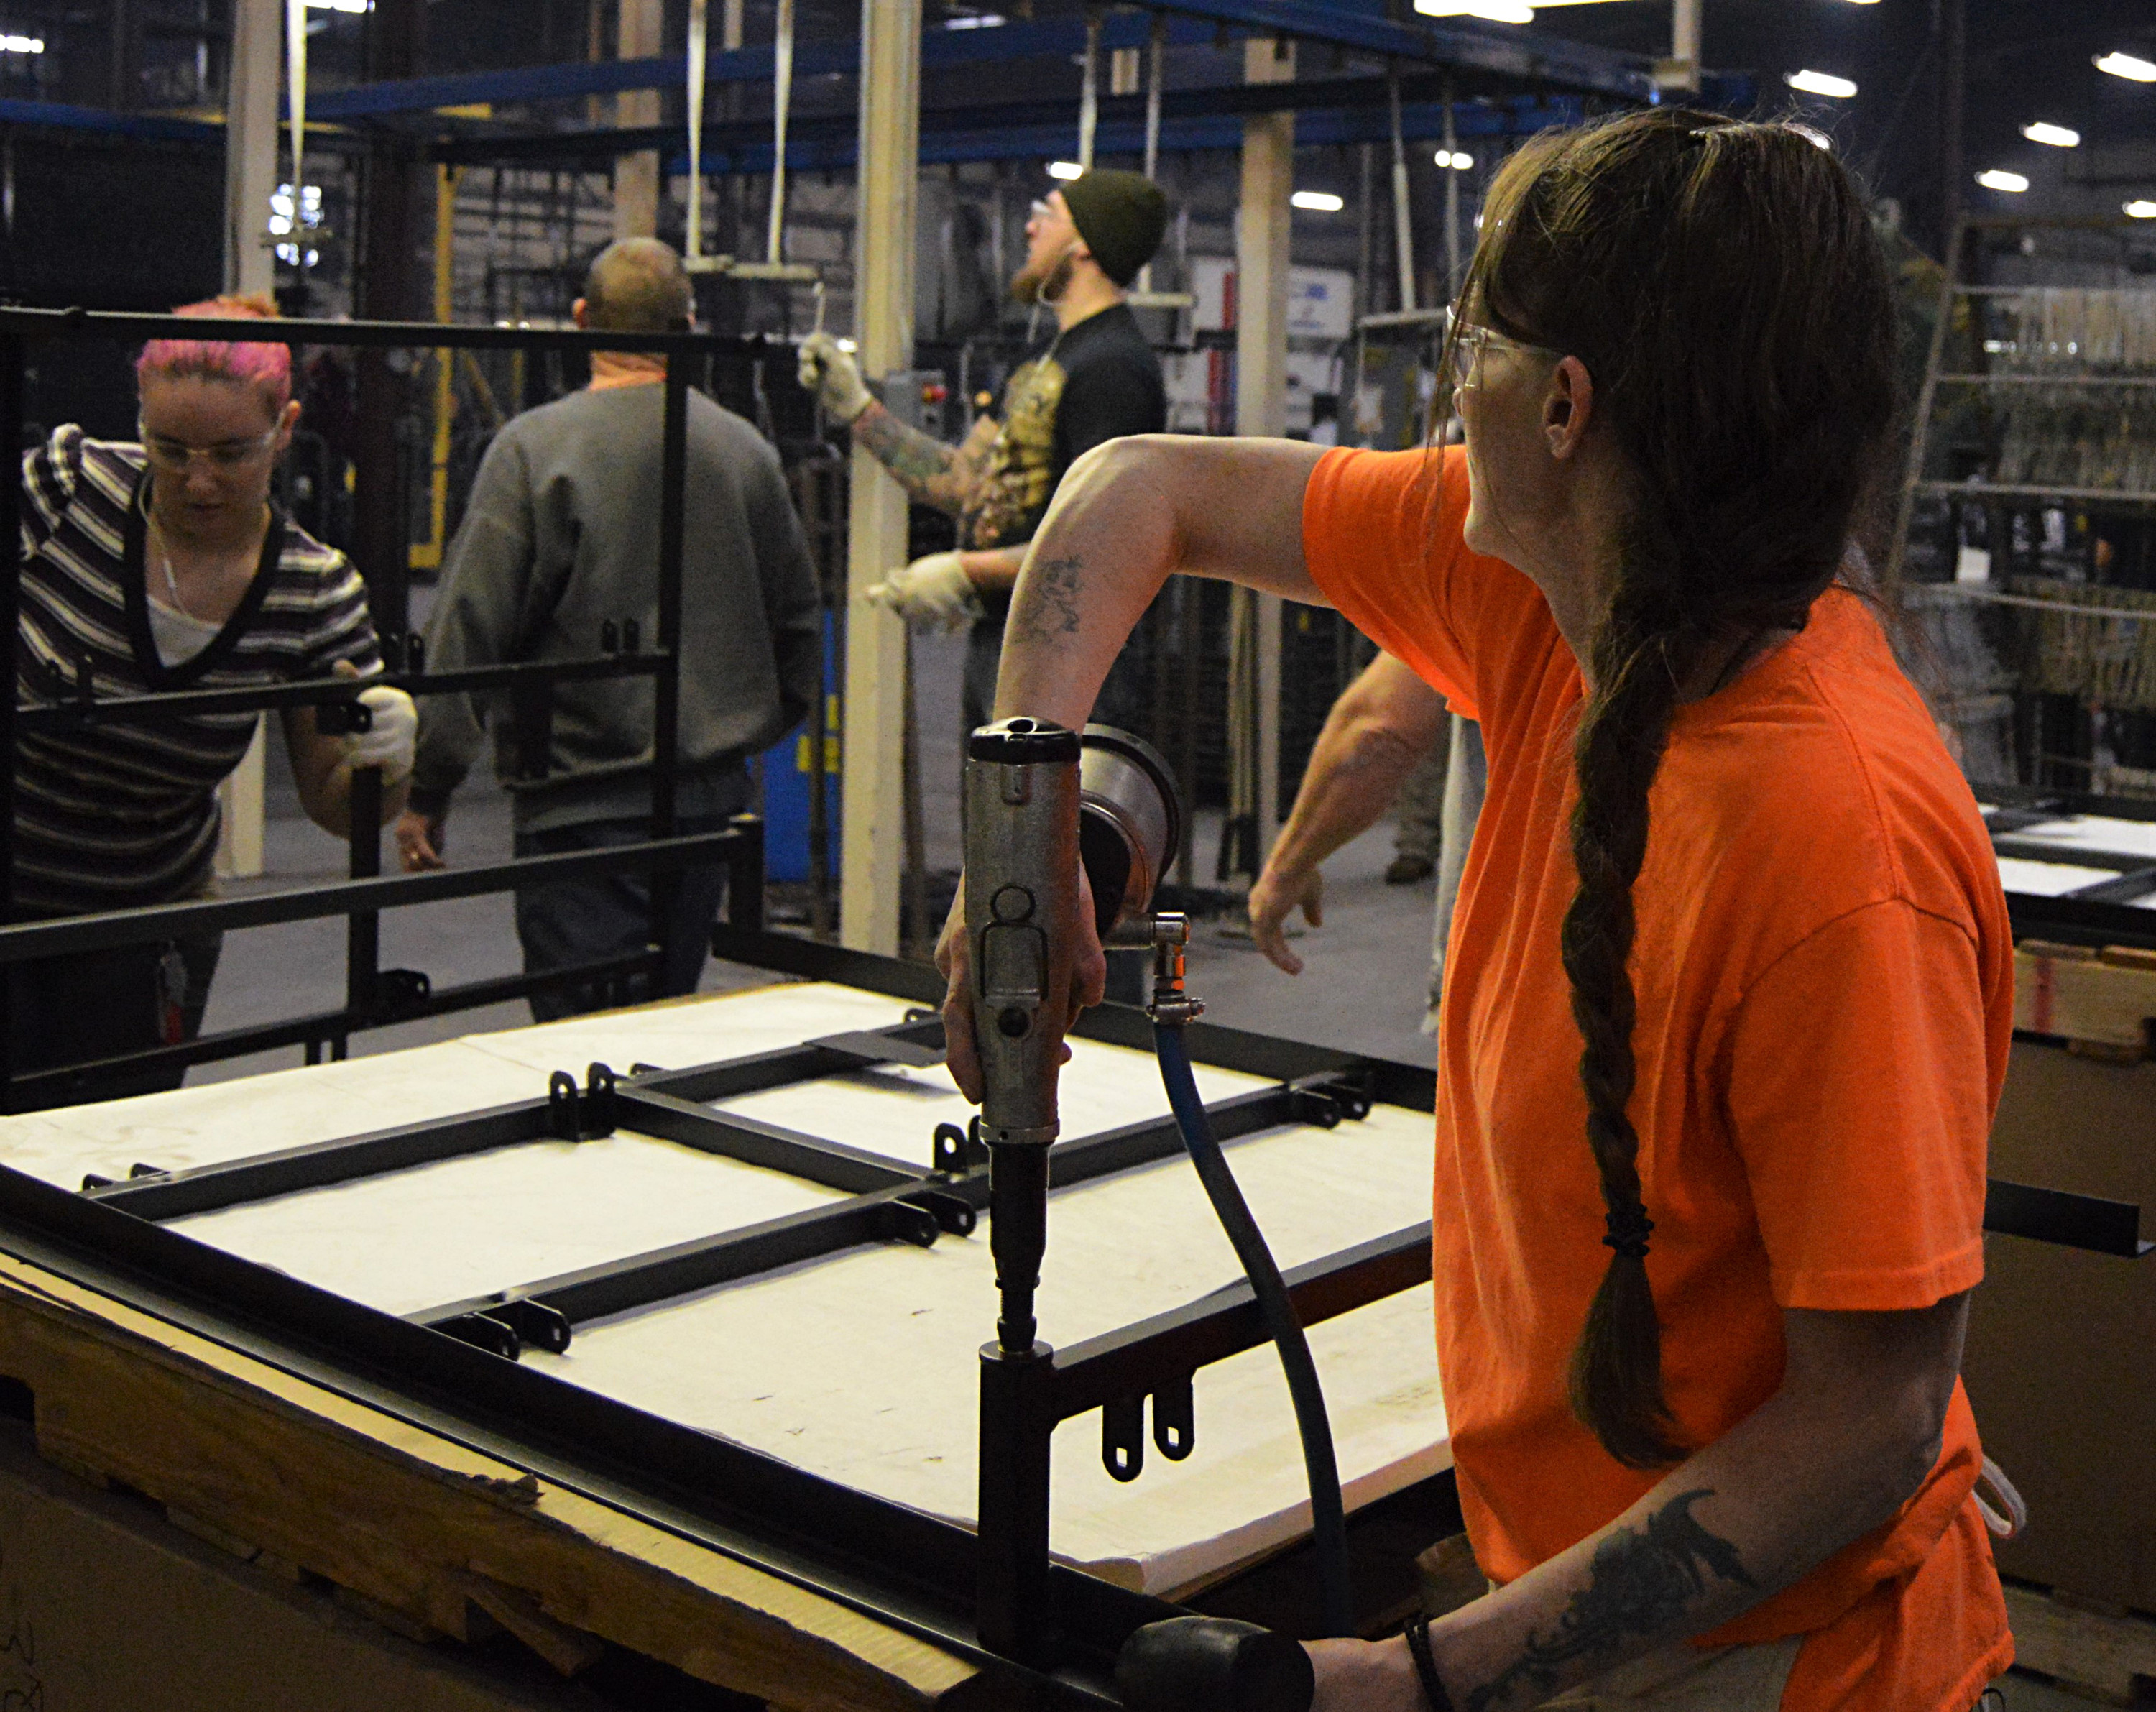 powder coating a tube on a table